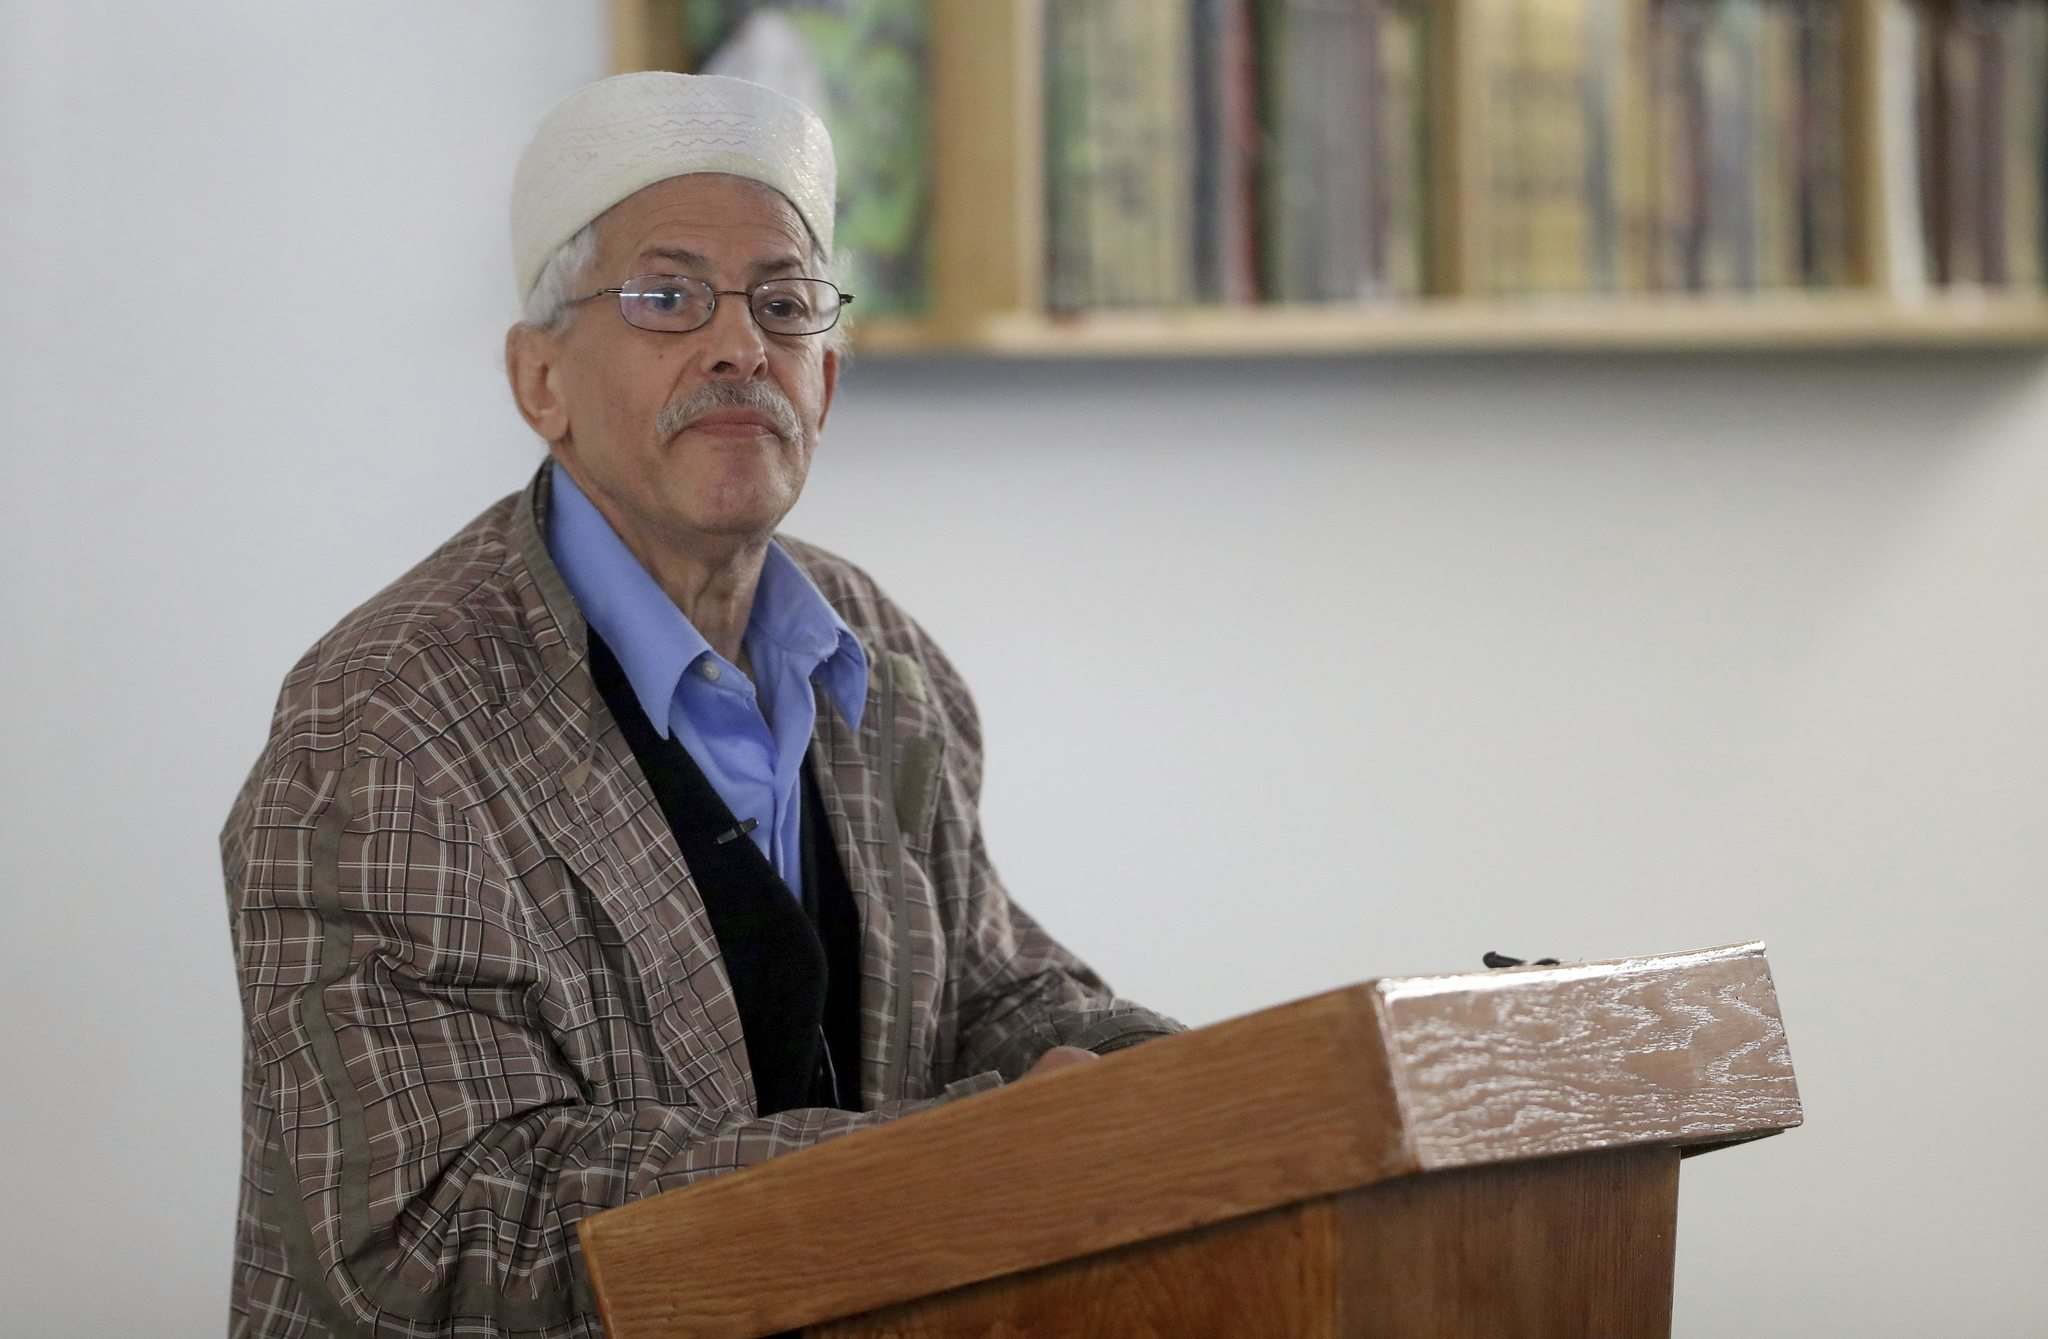 TREVOR HAGAN / WINNIPEG FREE PRESS</p><p>Ezzat Ibrahim, one of the pioneering members, speaking at the newly renamed Pioneer Mosque on its 40th anniversary, Sunday.</p>